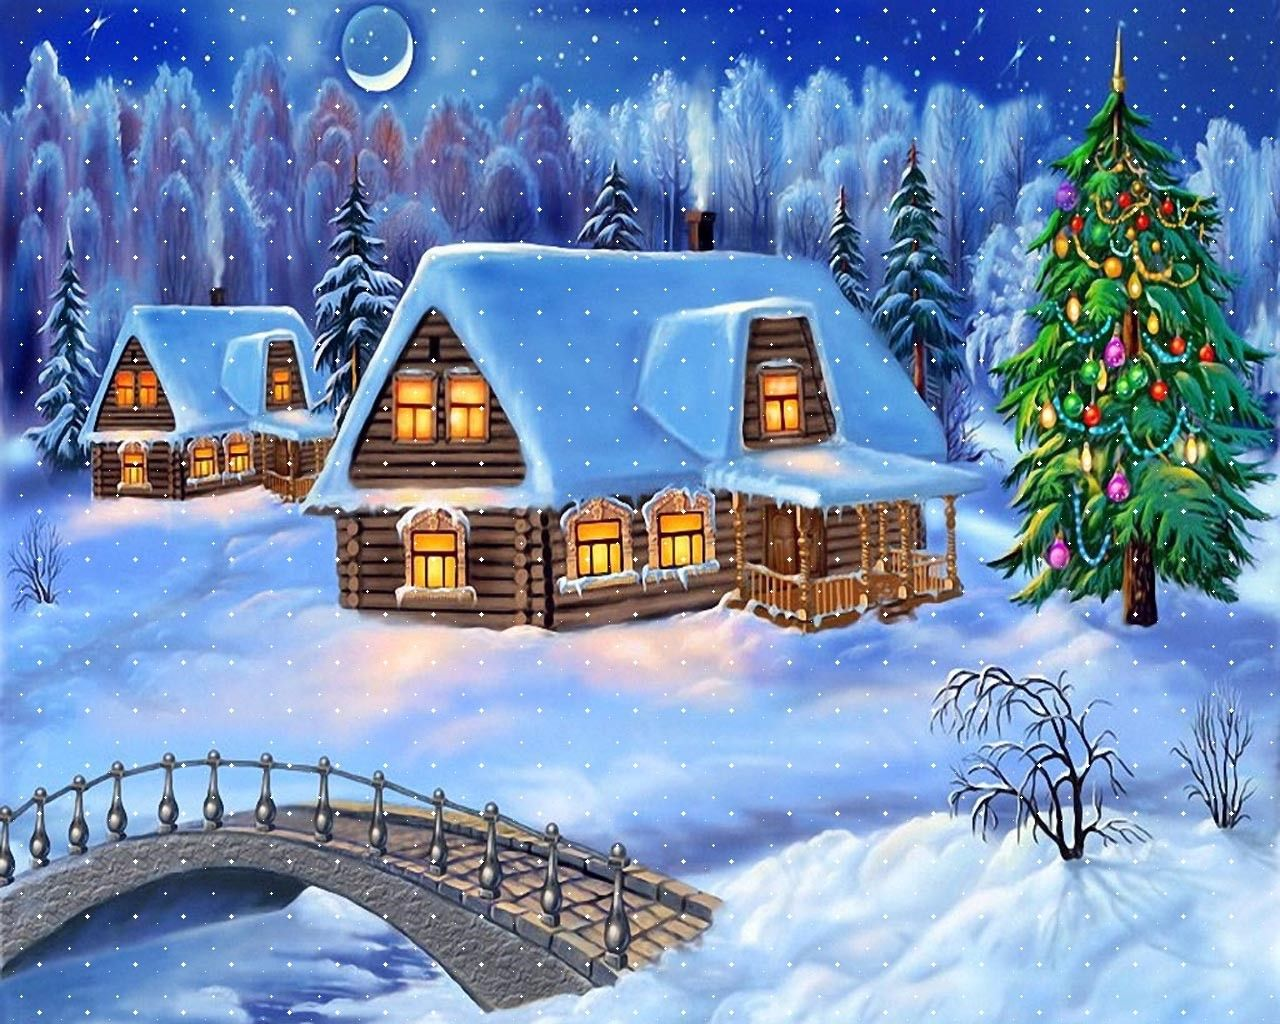 Snowy Christmas Night Decoration with Christmas Tree Wallpaper ...